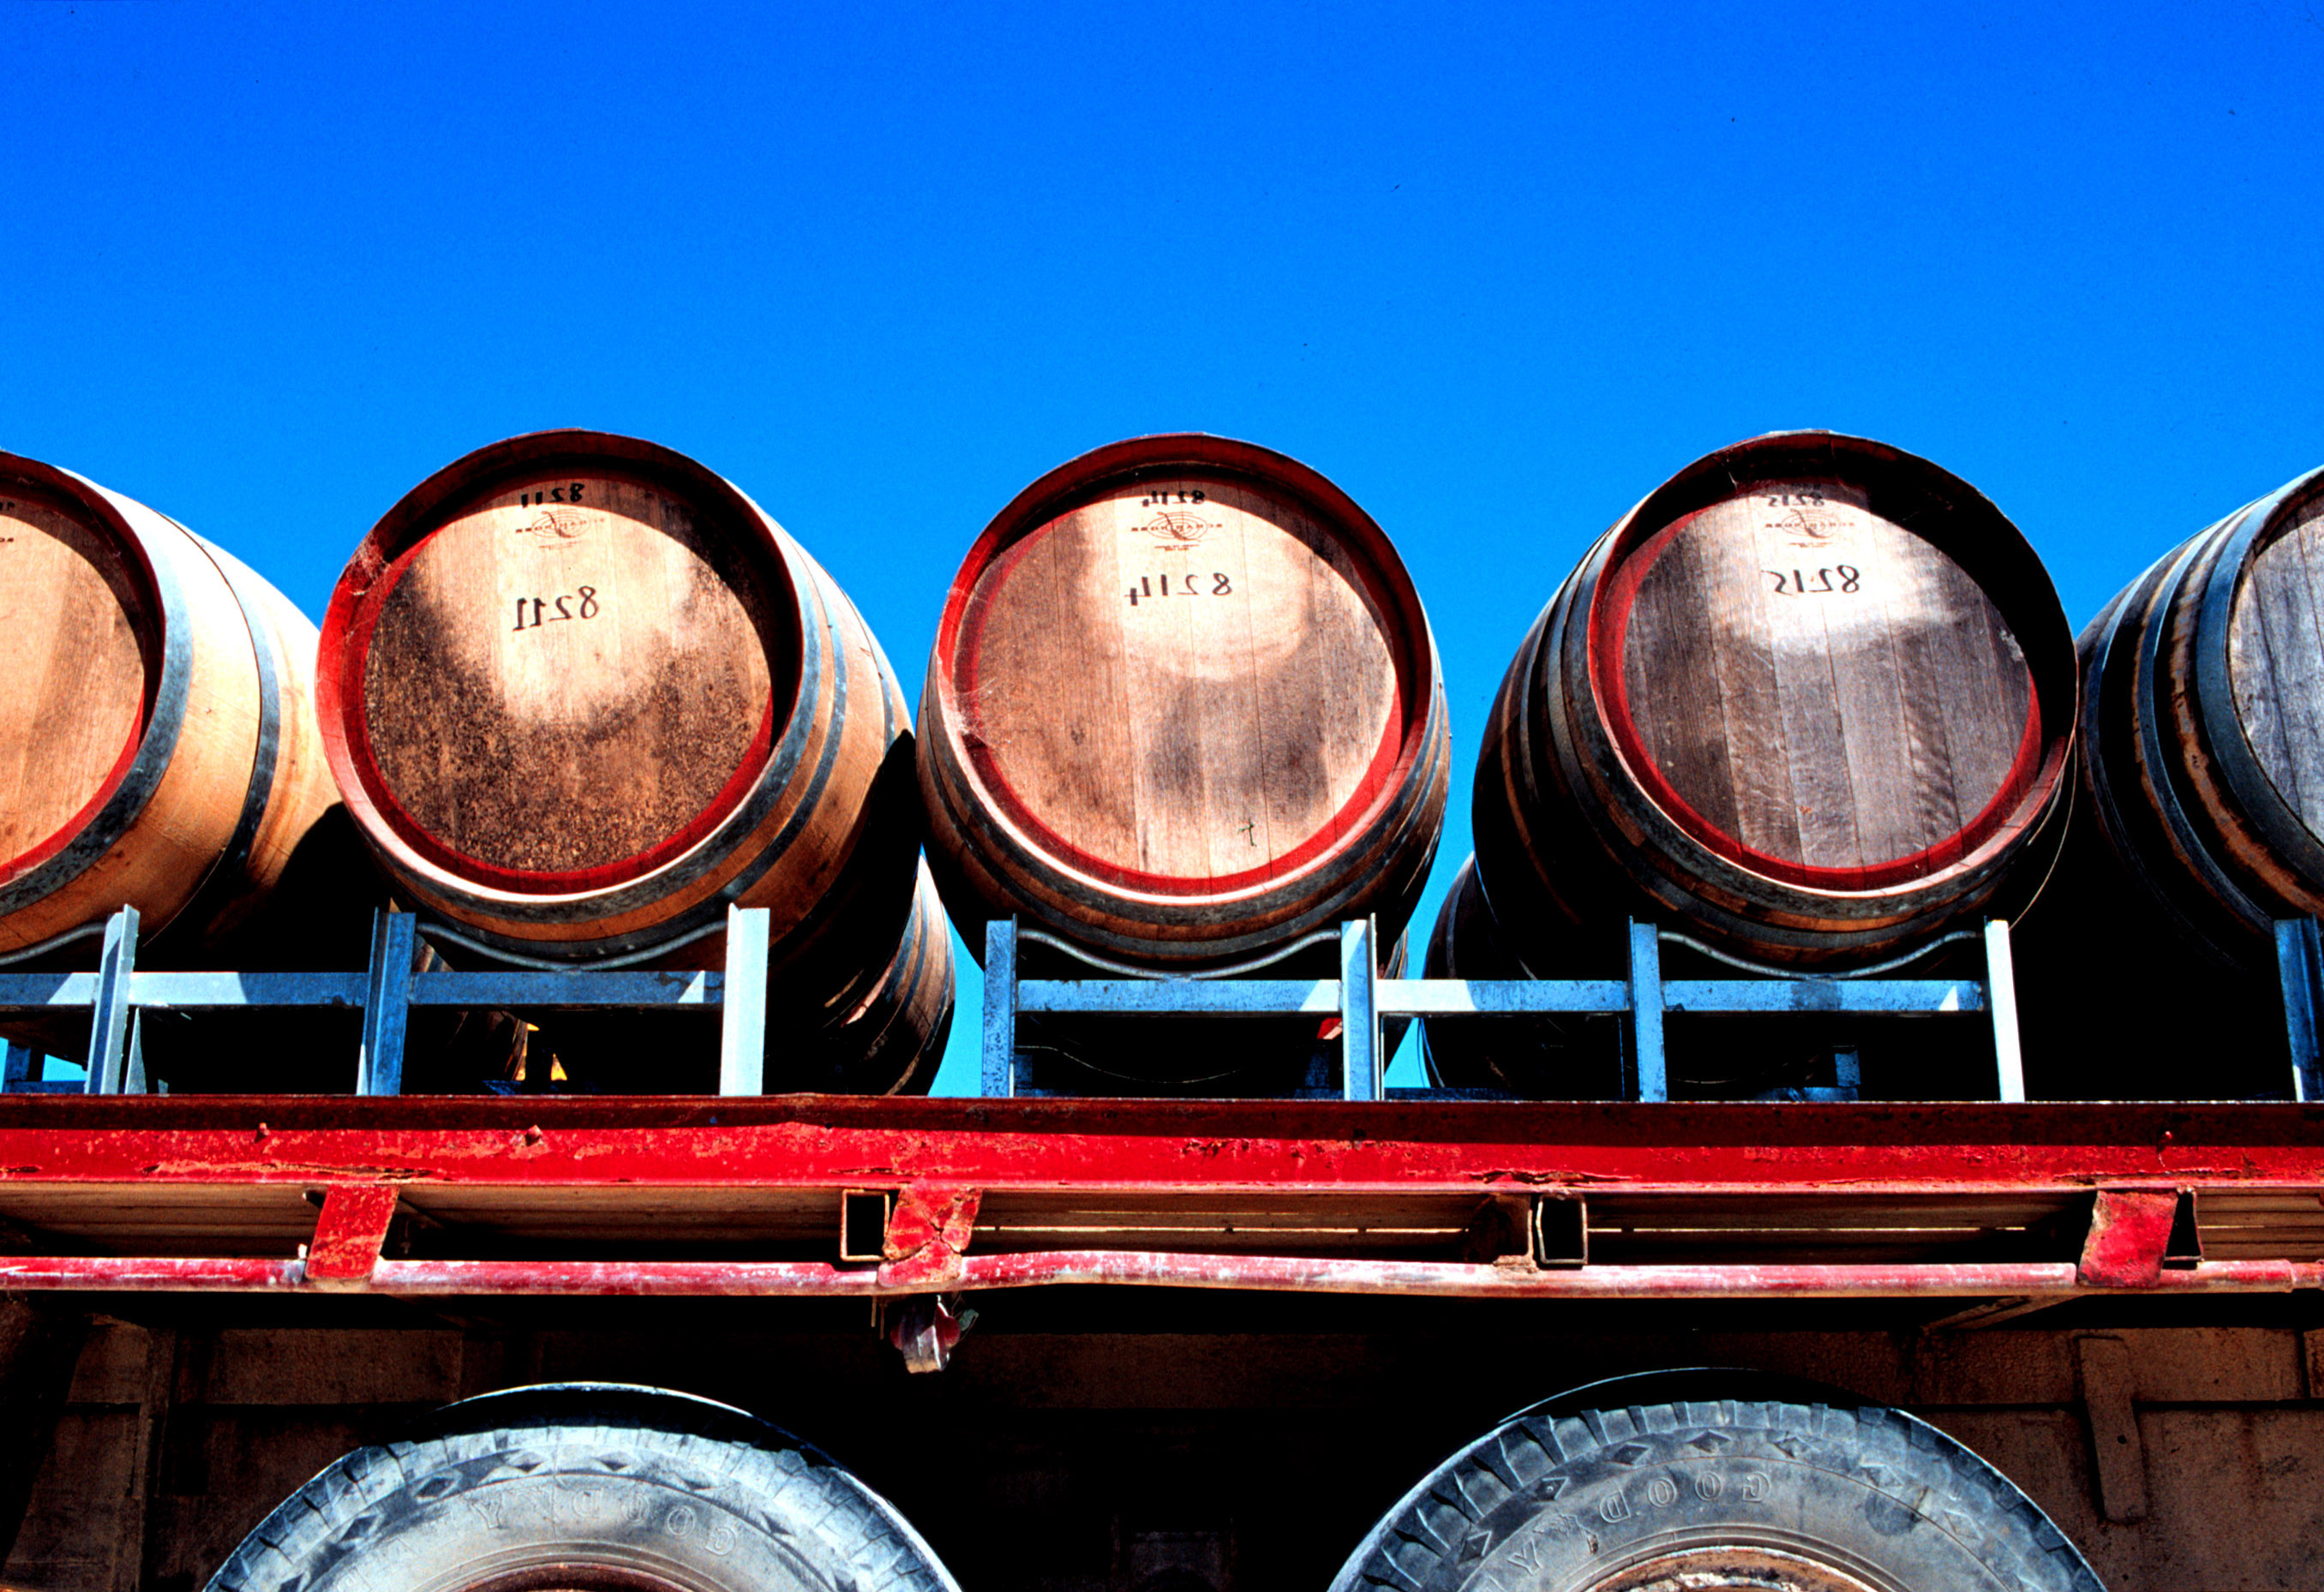 Wine barrels on truck